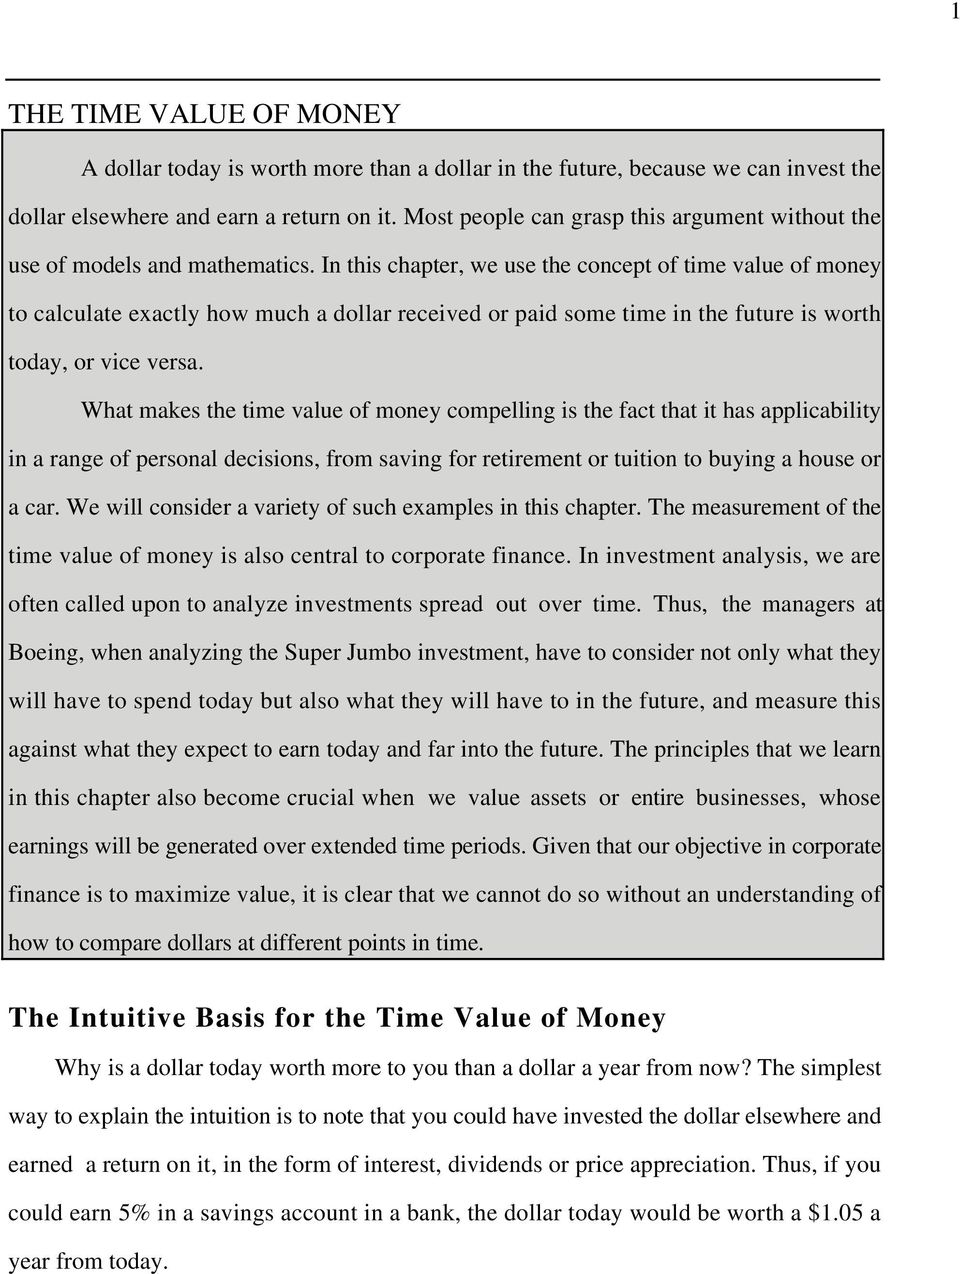 In this chapter, we use the concept of time value of money to calculate exactly how much a dollar received or paid some time in the future is worth today, or vice versa.